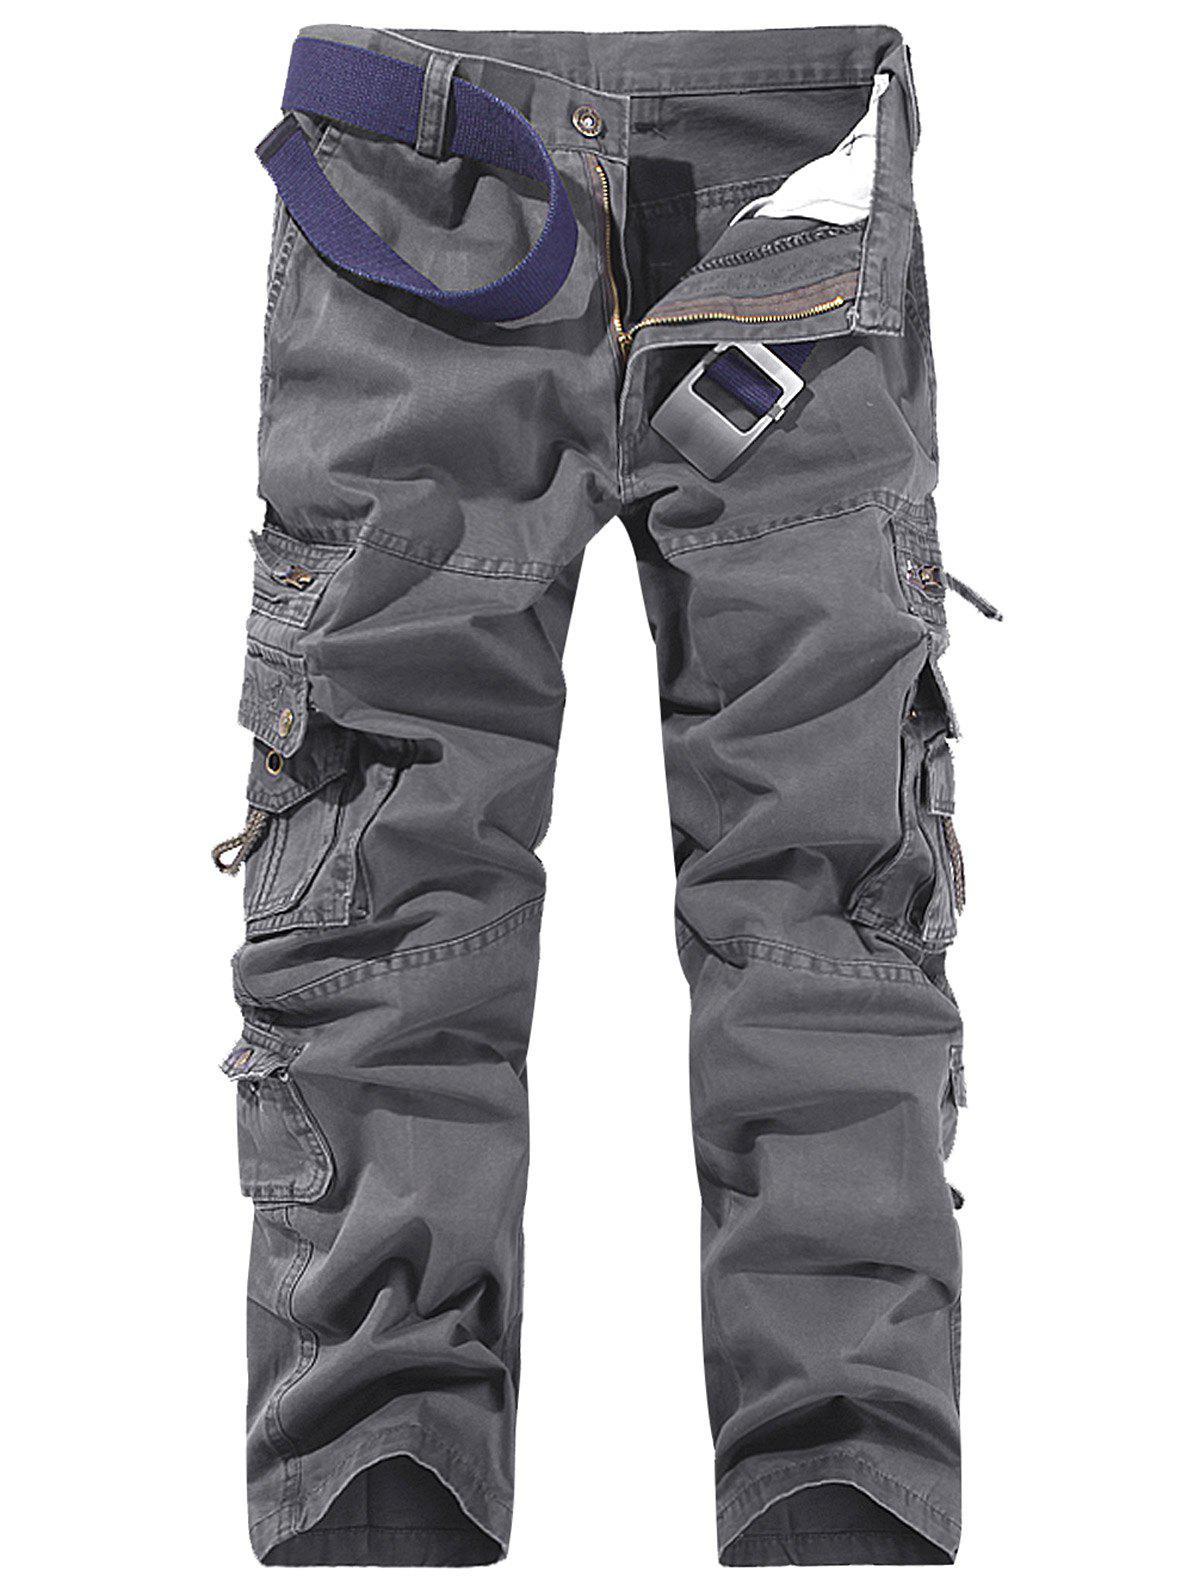 String Design Embroidered Cargo Pants, Deep gray